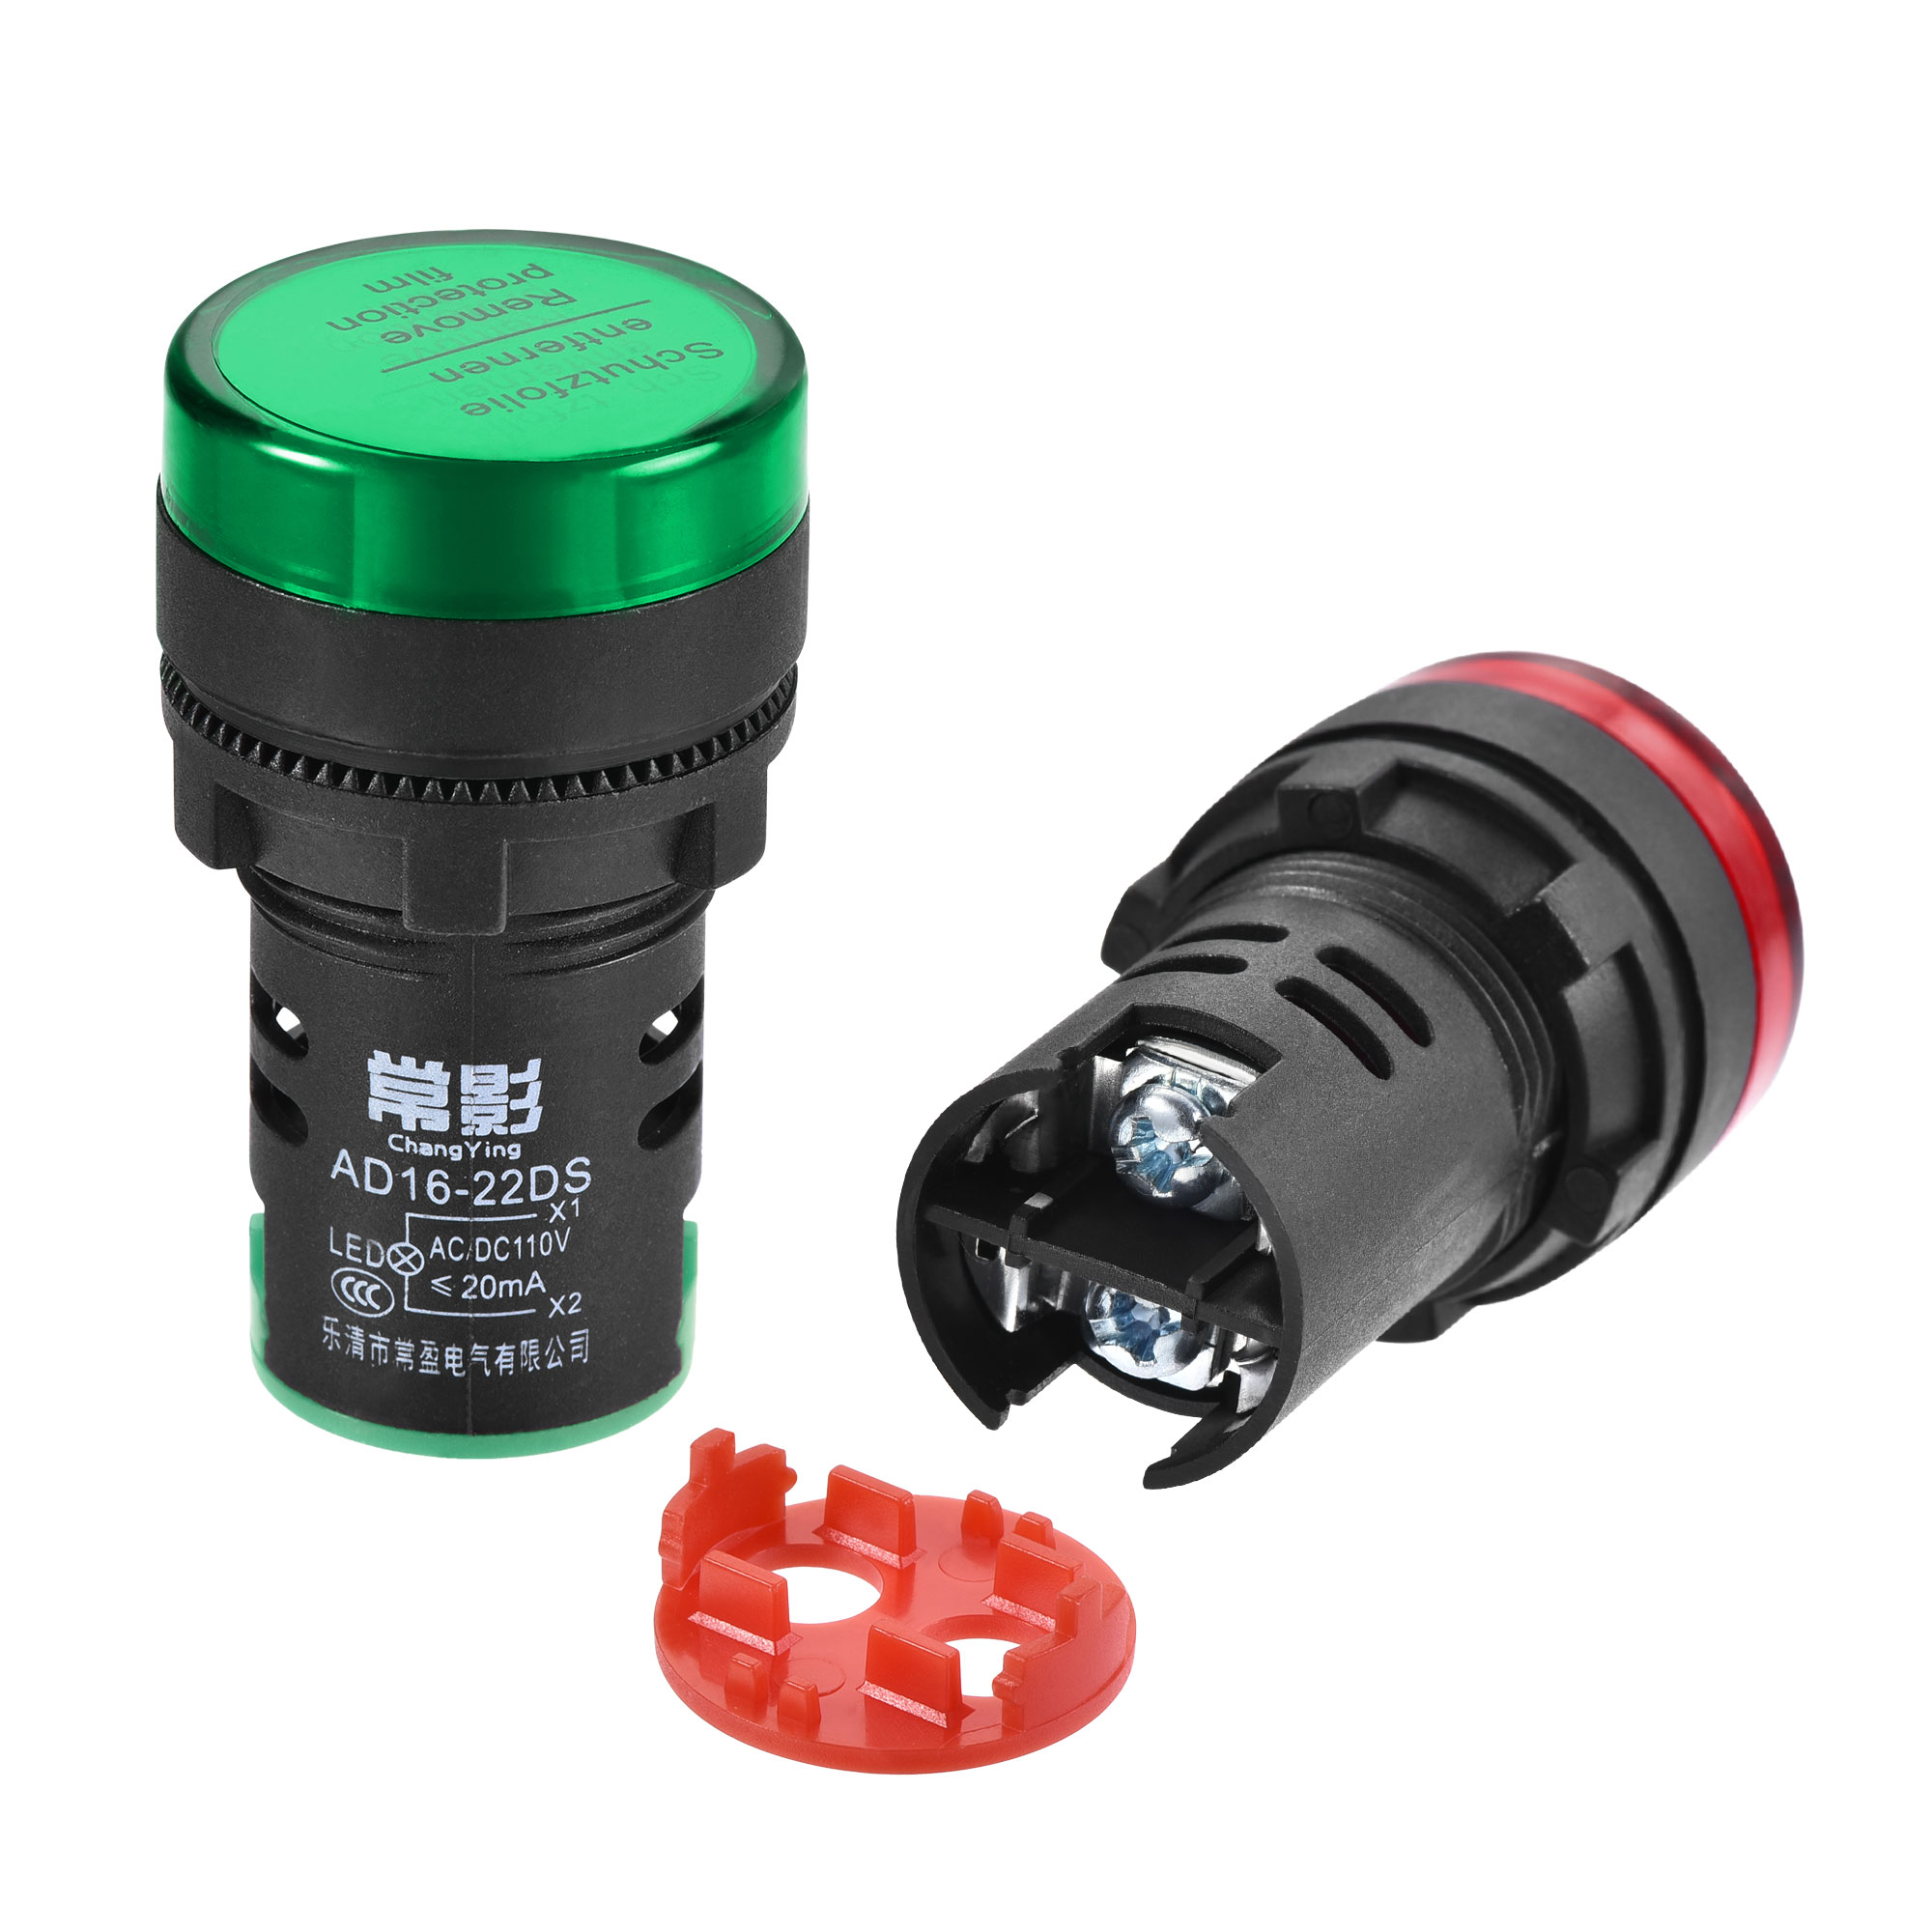 AC/DC 110V Indicator Lights, Dust Cover IP54, Red Green - 2 Colors, 10Pcs